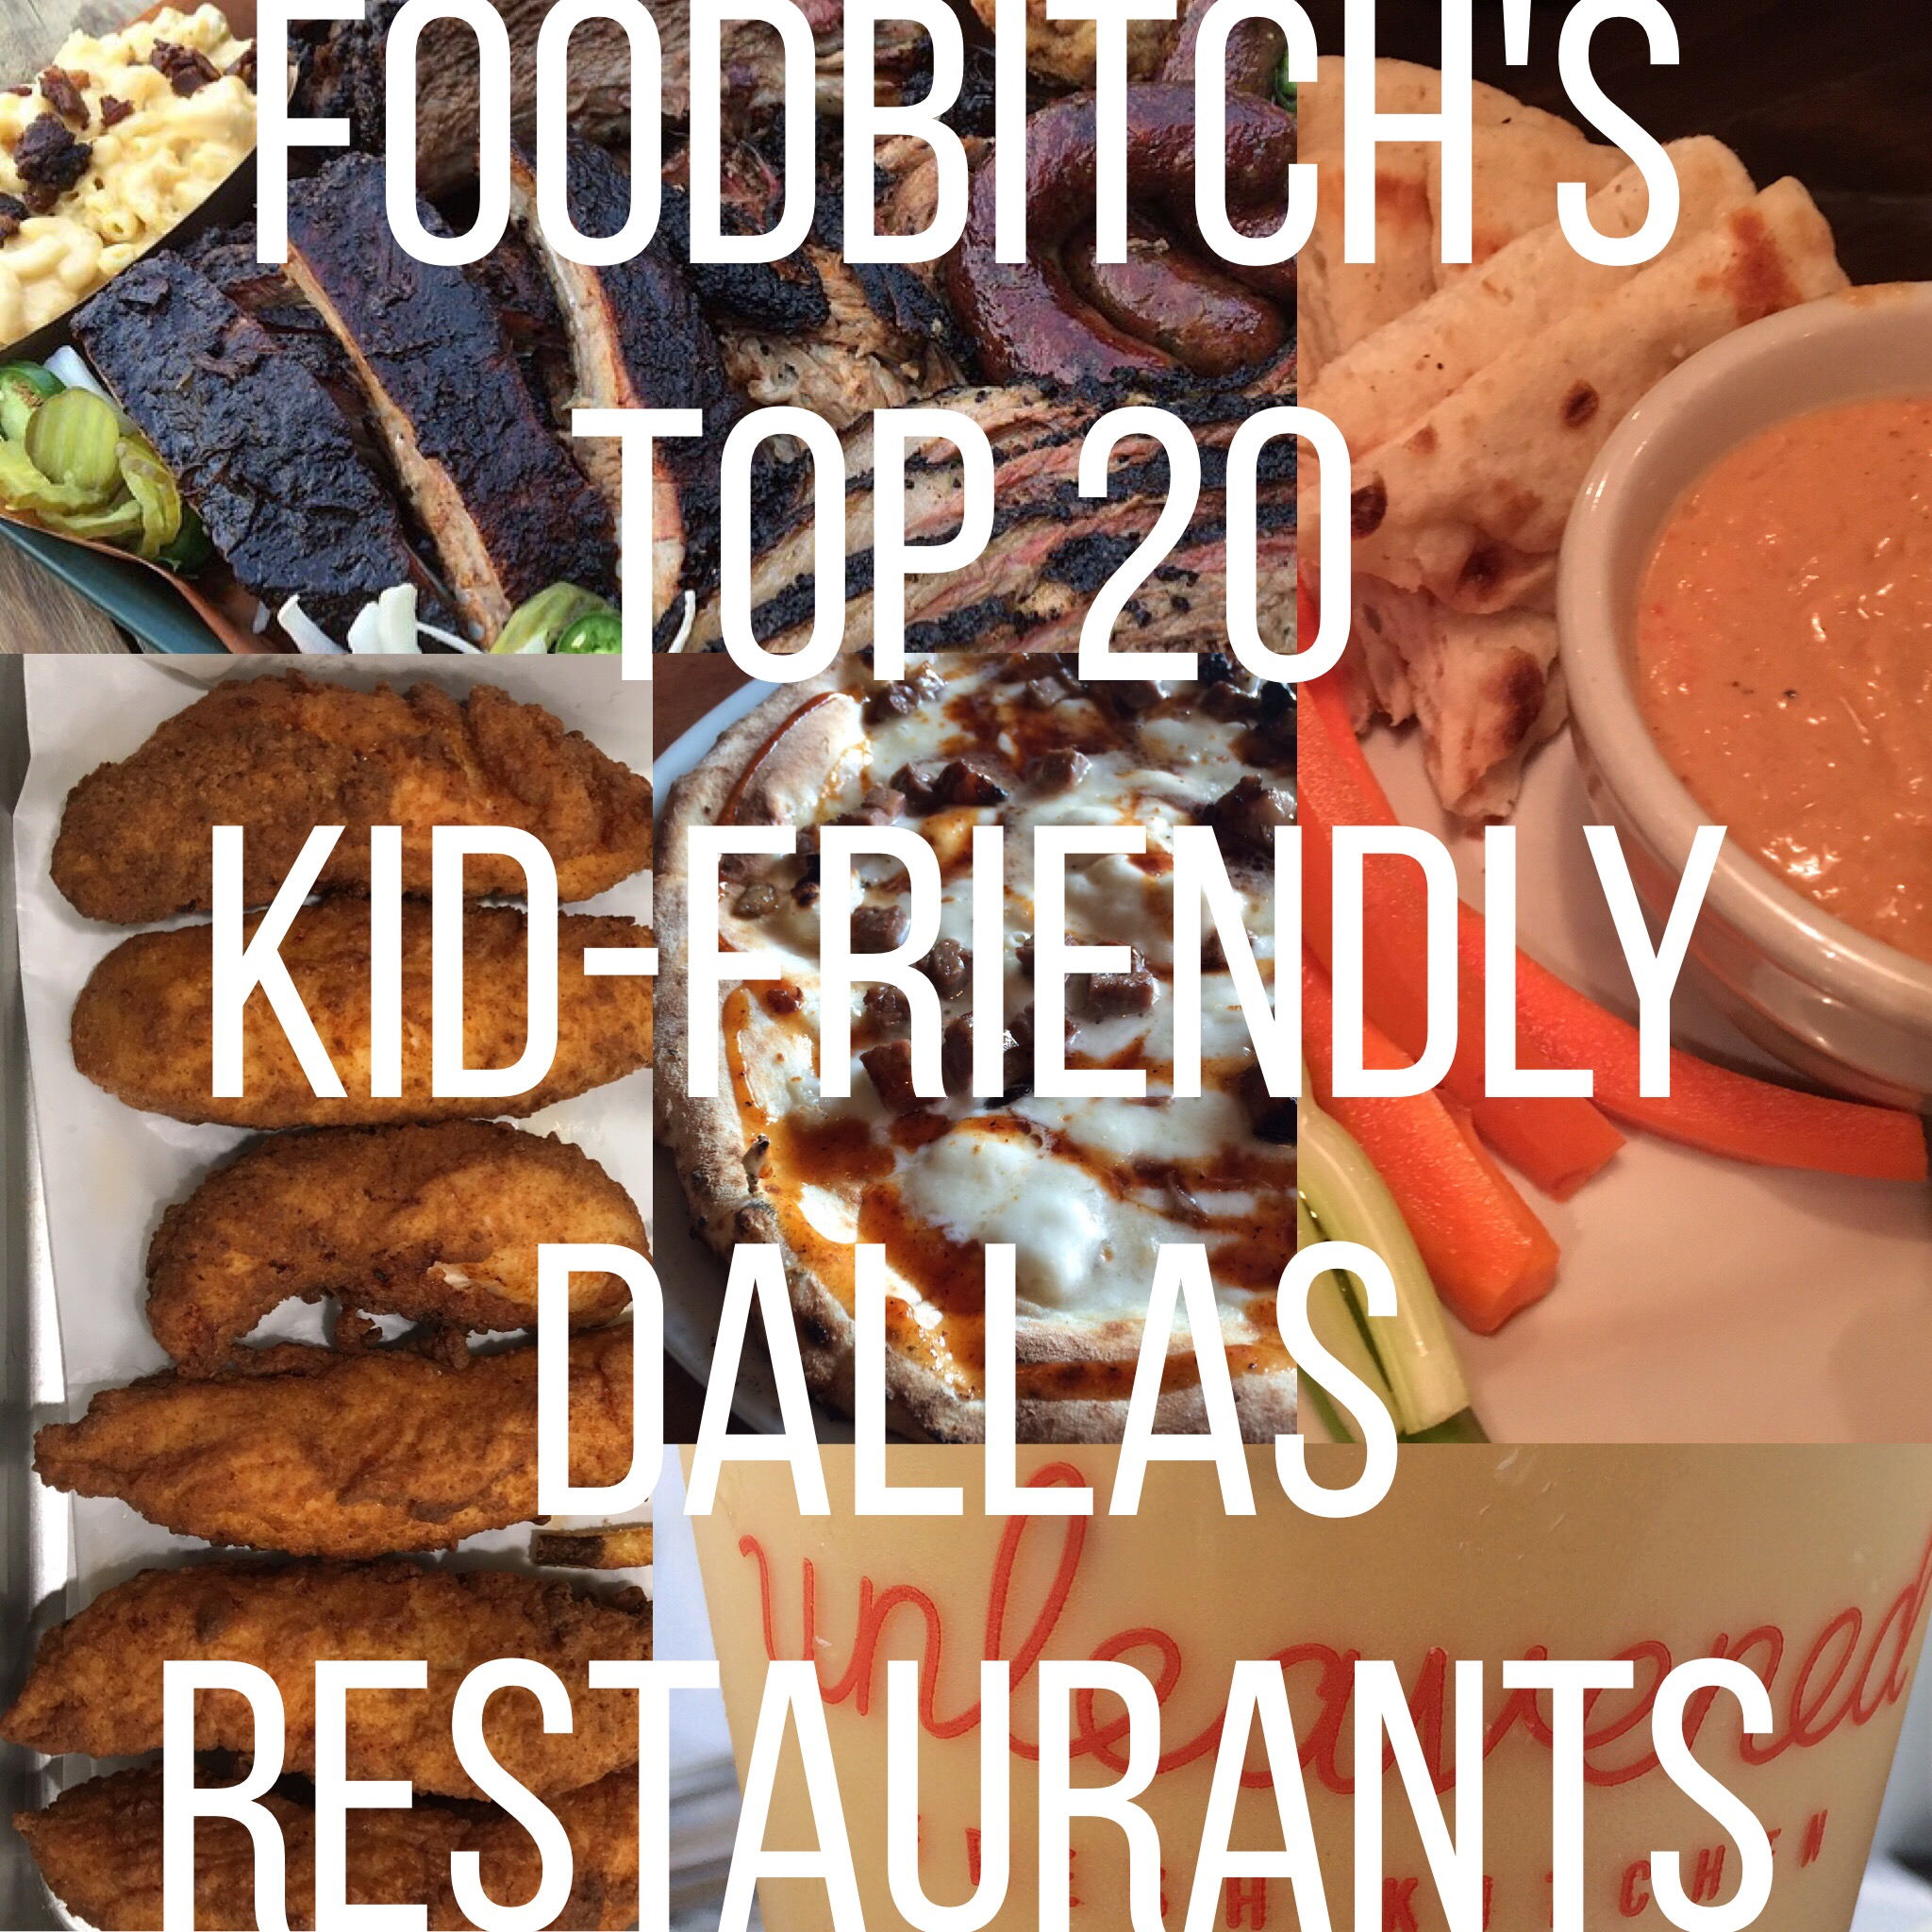 @askfoodbitch's cover photo for 'Top 20 Kid-Friendly Restaurants in Dallas According to Foodbitch'